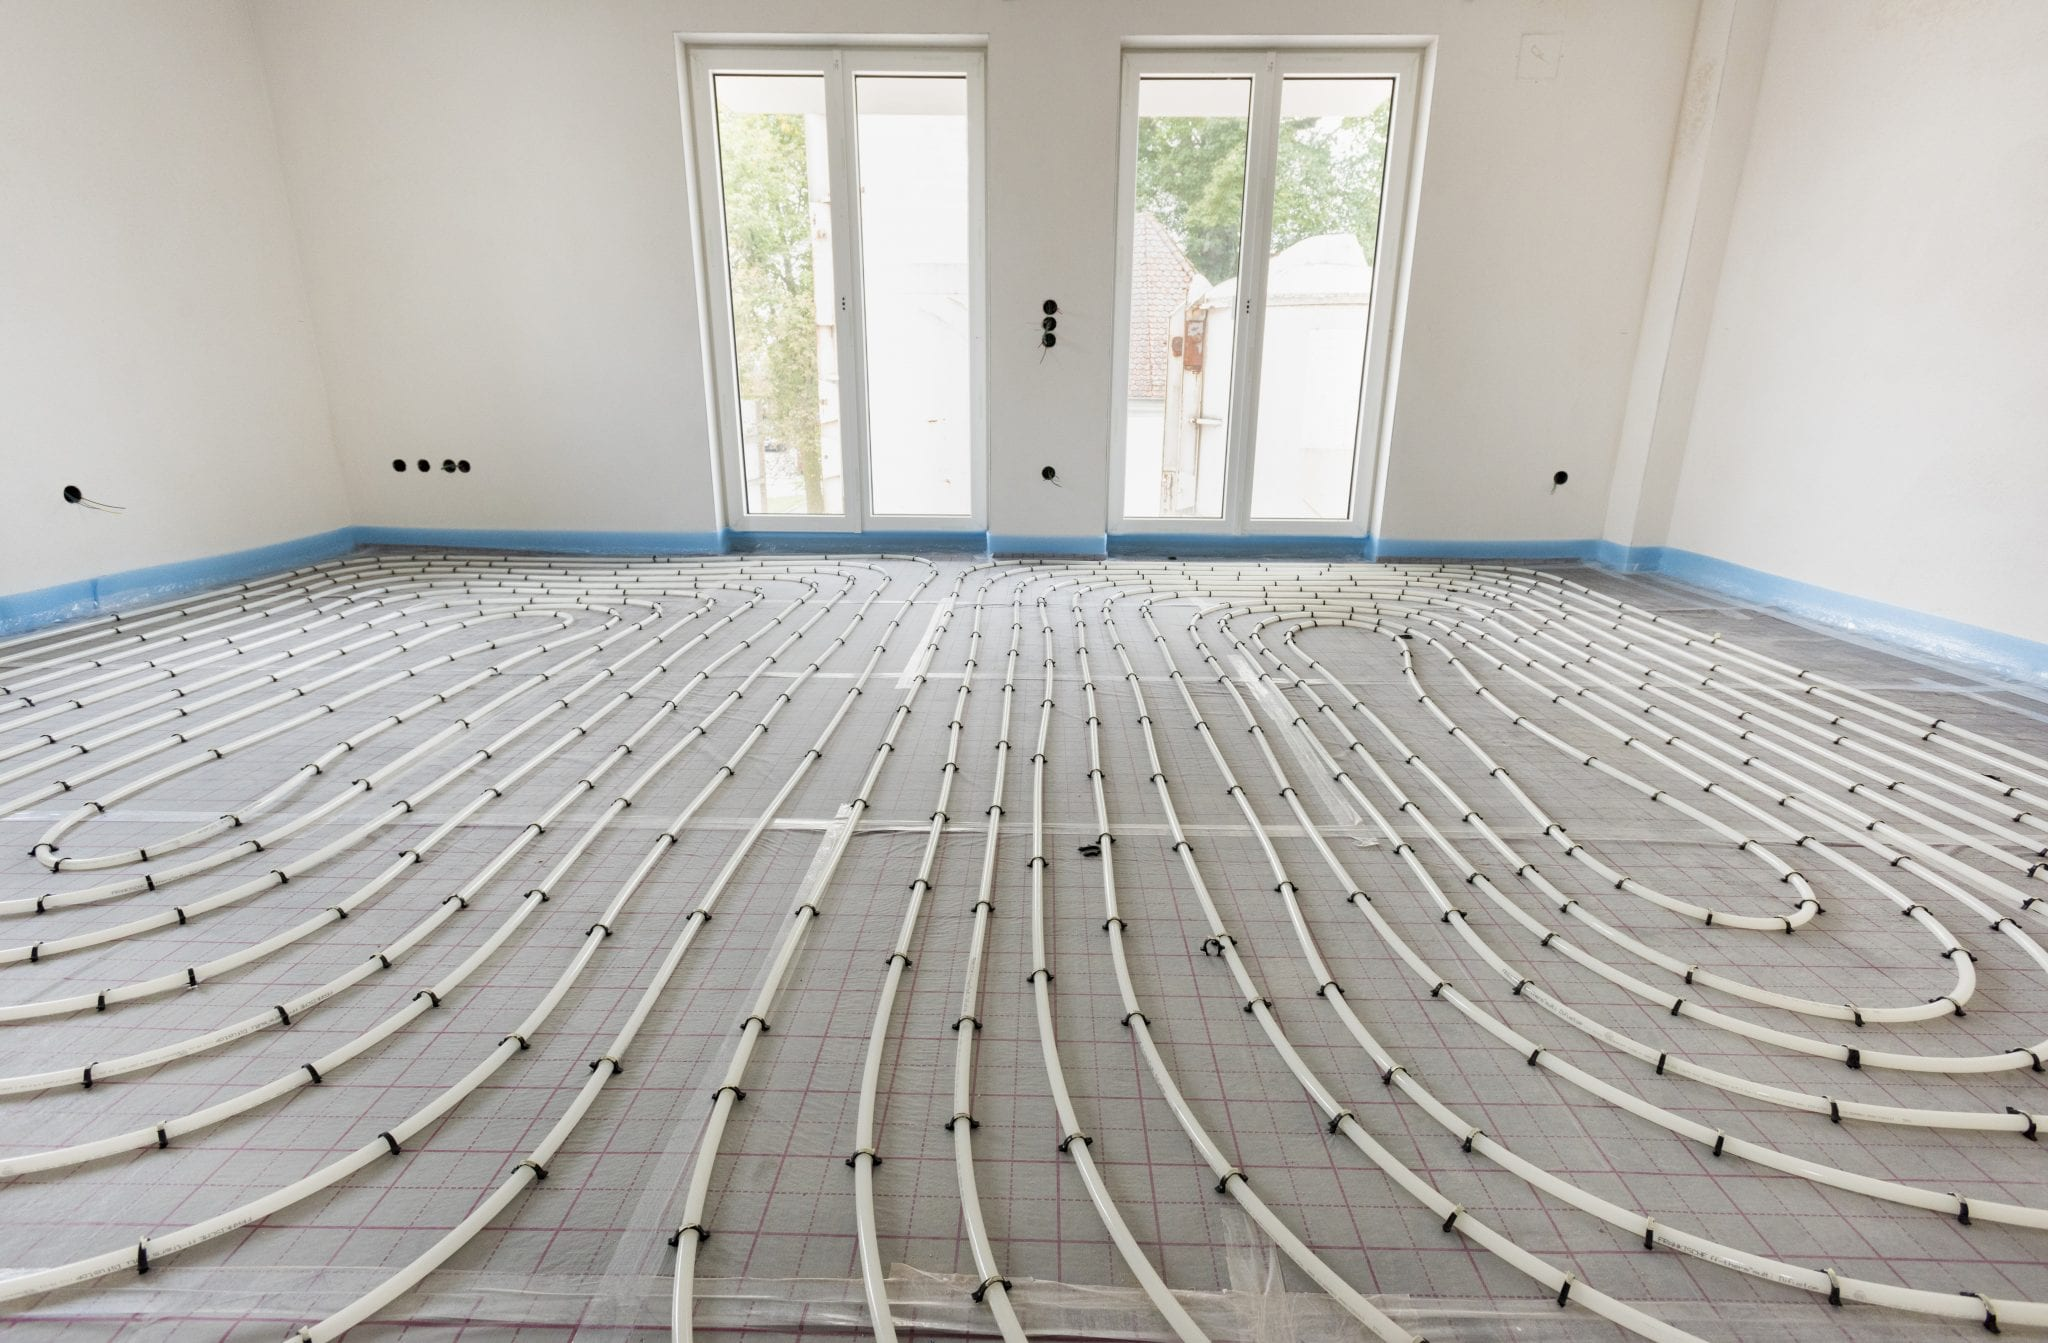 Underfloor heating installed in Leeds, Roundhay by specialist plumbers